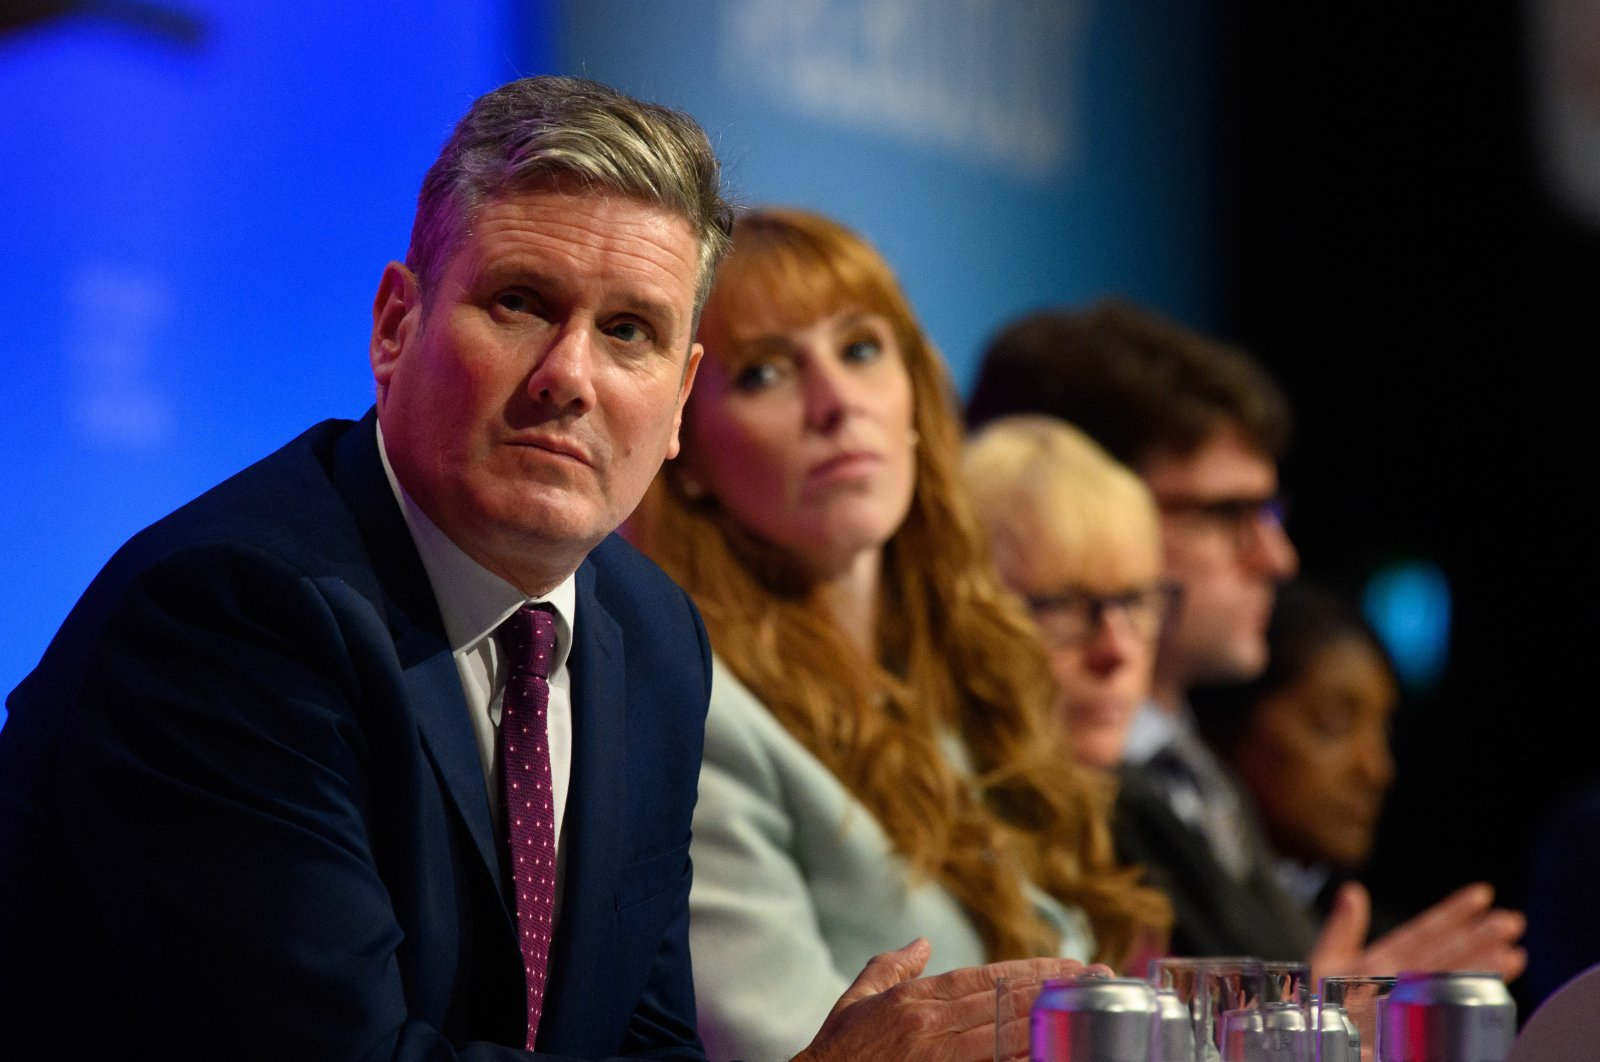 Leader of the Labour Party Sir Keir Starmer and deputy Leader Angela Rayner pictured at the 2021 Labour Party Conference in Brighton on Sept. 27, 2021. (Matt Crossick / Empics via Reuters)